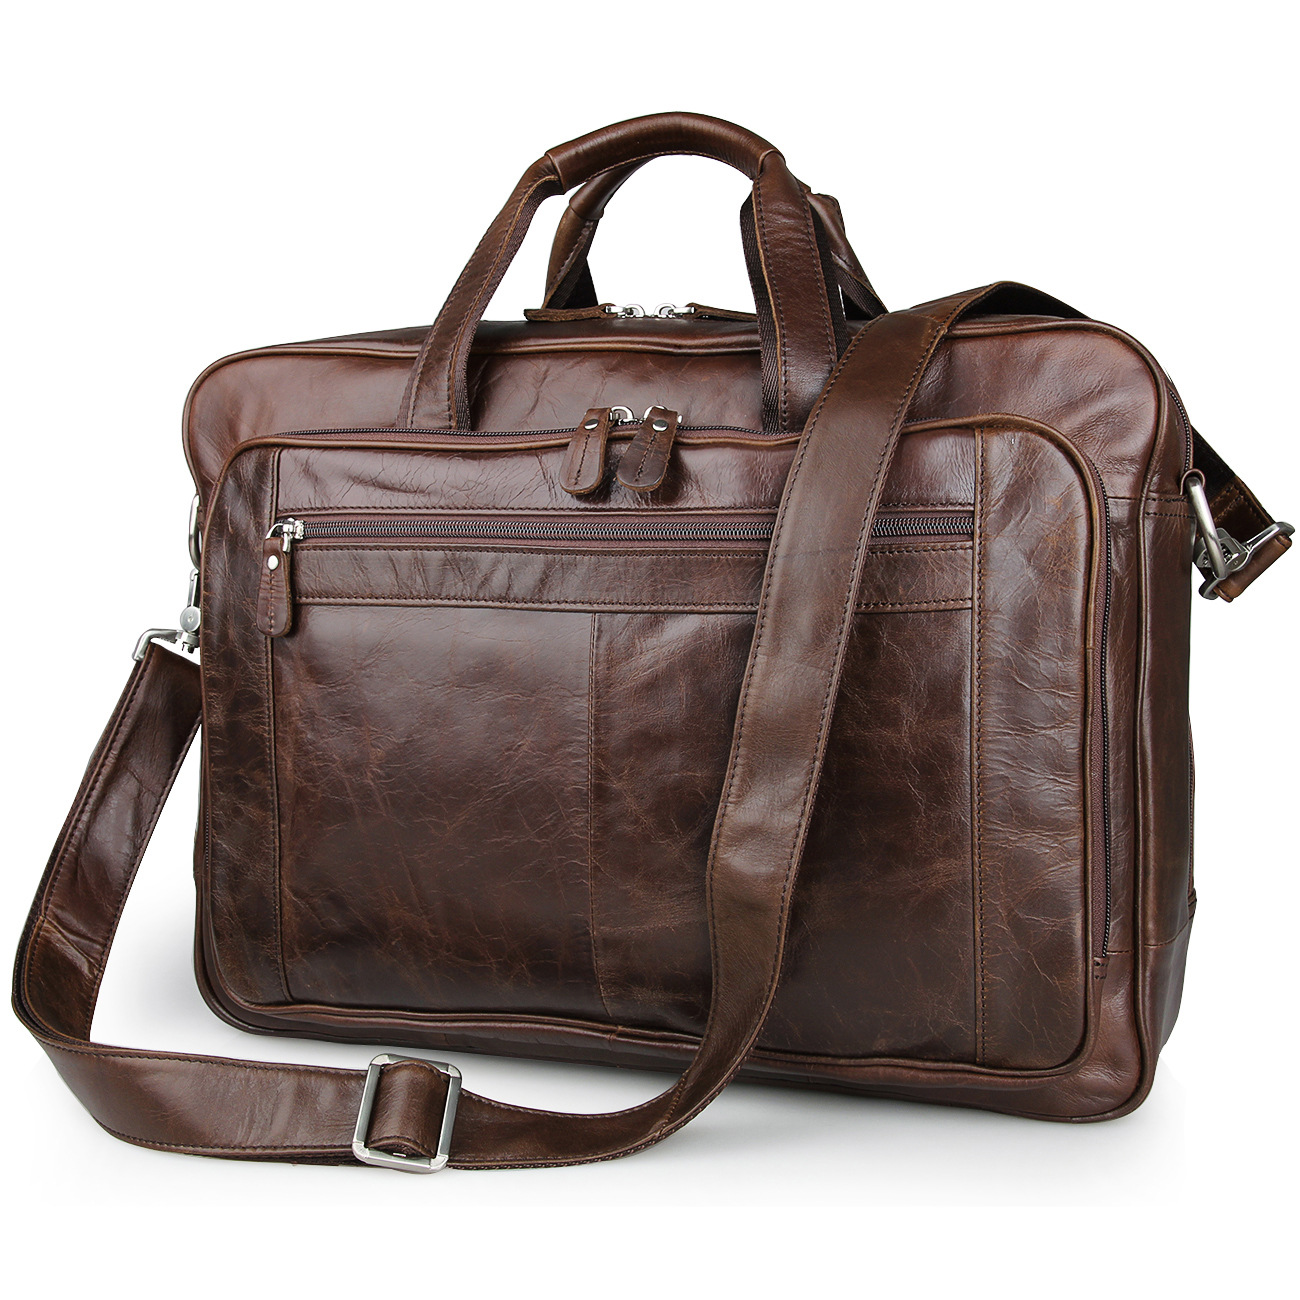 Fashion Vintage Men's Genuine Leather Briefcase Men Shoulder Bag Handbag Large Capacity Cowhide Business Laptop Tote Travel Bag